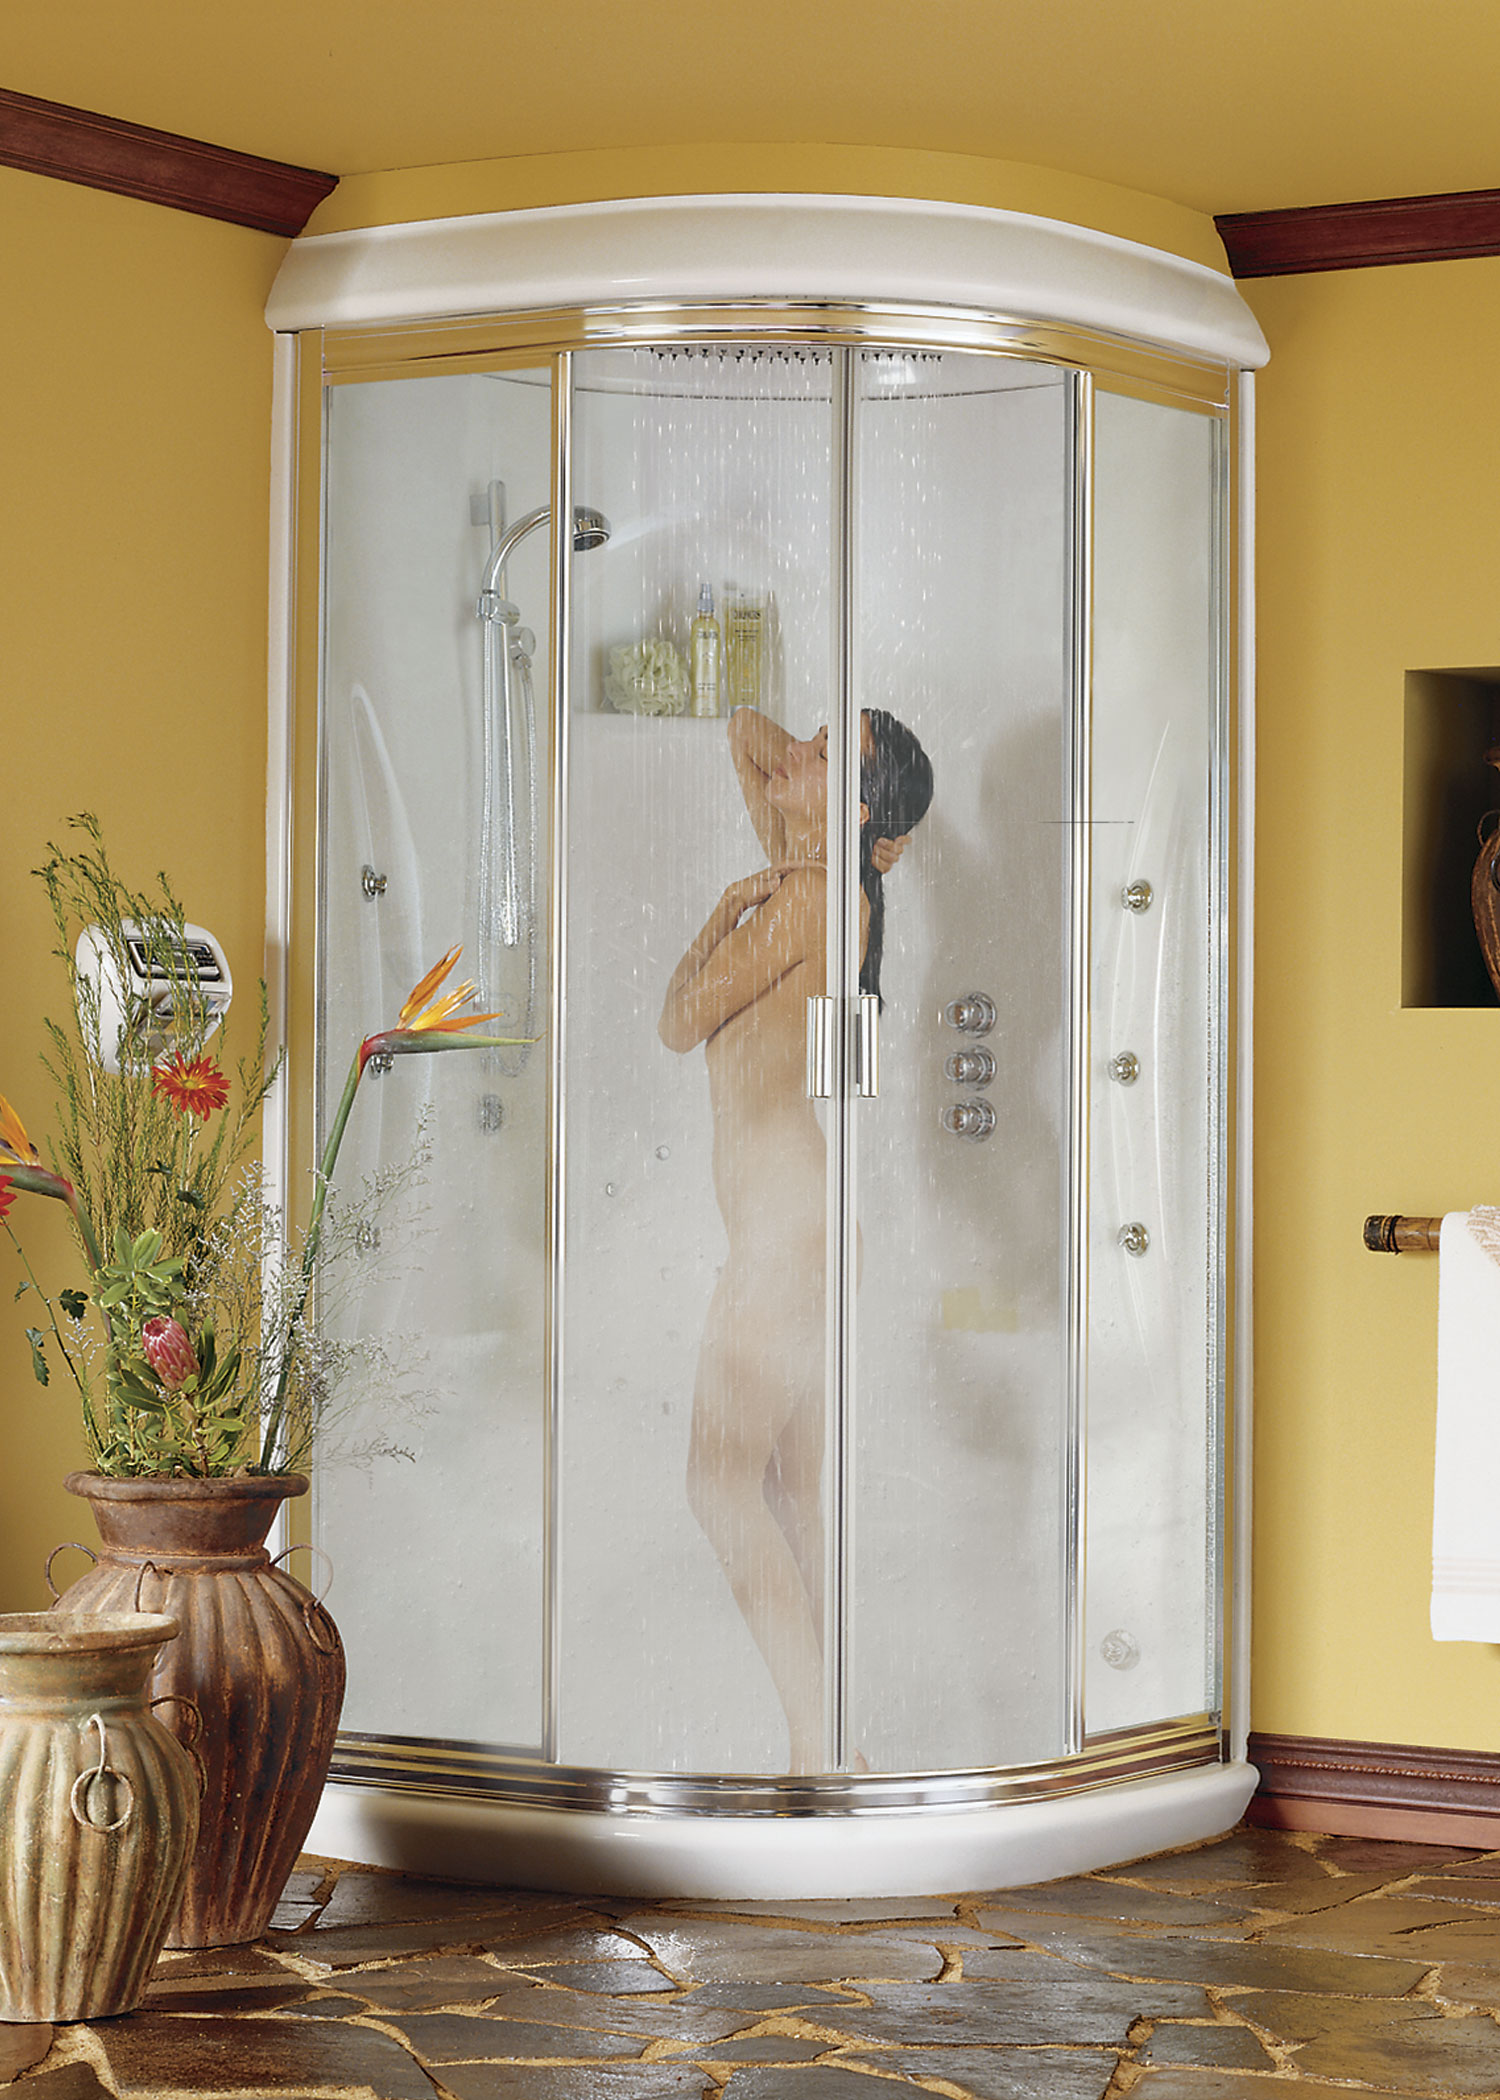 Universal ceramic tiles new york brooklyn whirlpools shower maax rainforest steam shower enclosure maax rainforest steam shower enclosure dailygadgetfo Image collections